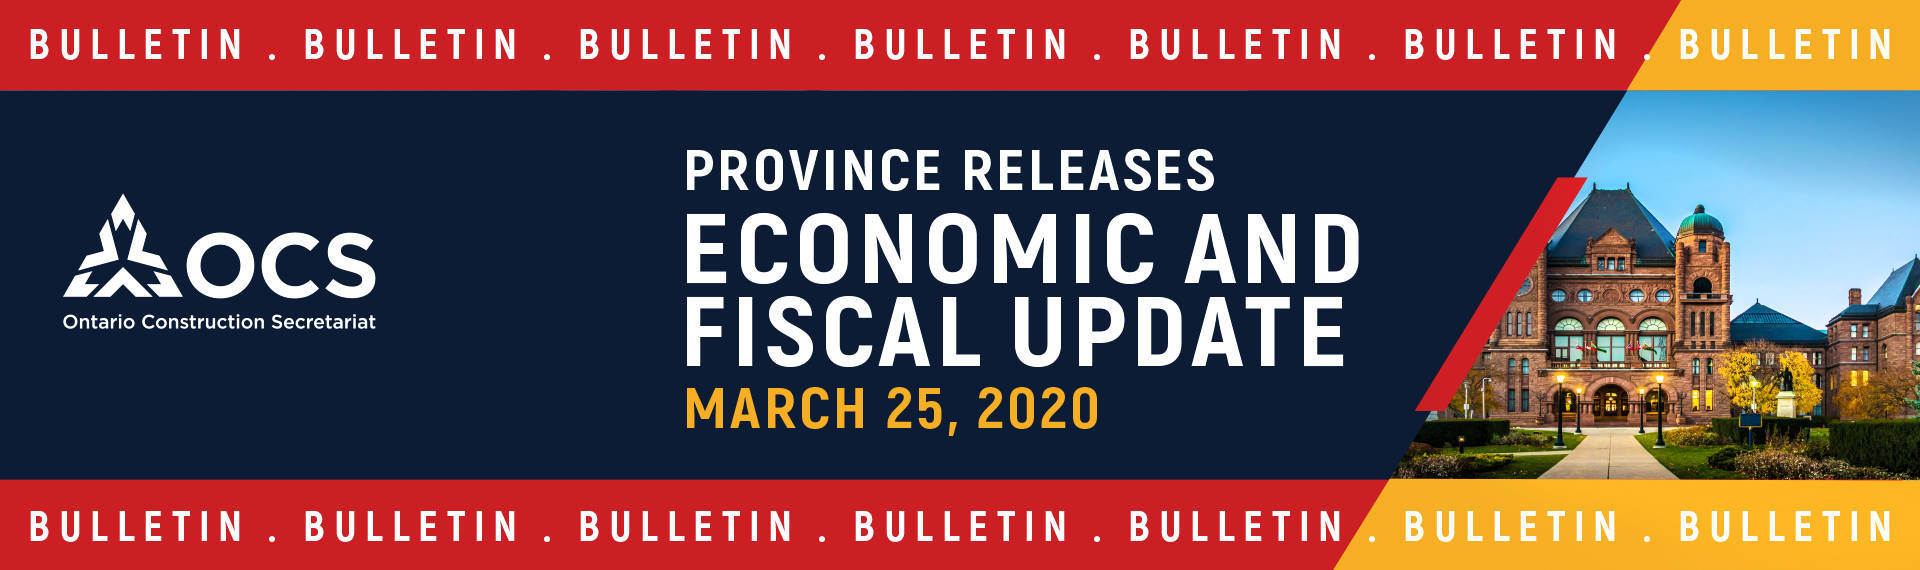 Economic-REV-Banner-March-2020